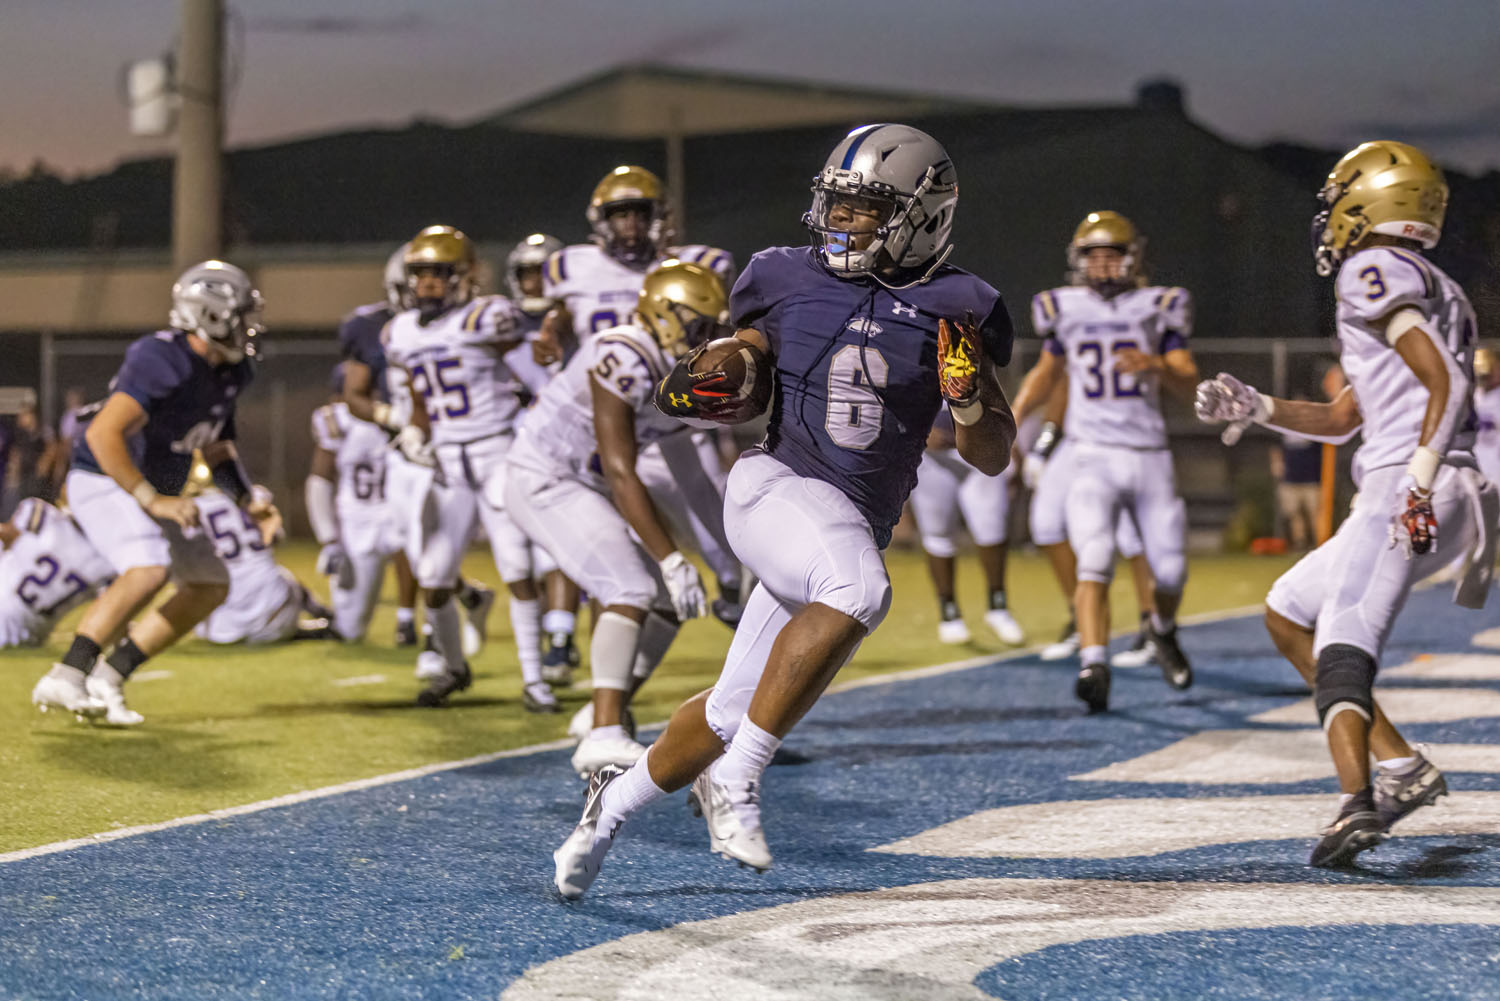 Clay-Chalkville explodes early, hangs on late to beat Hueytown